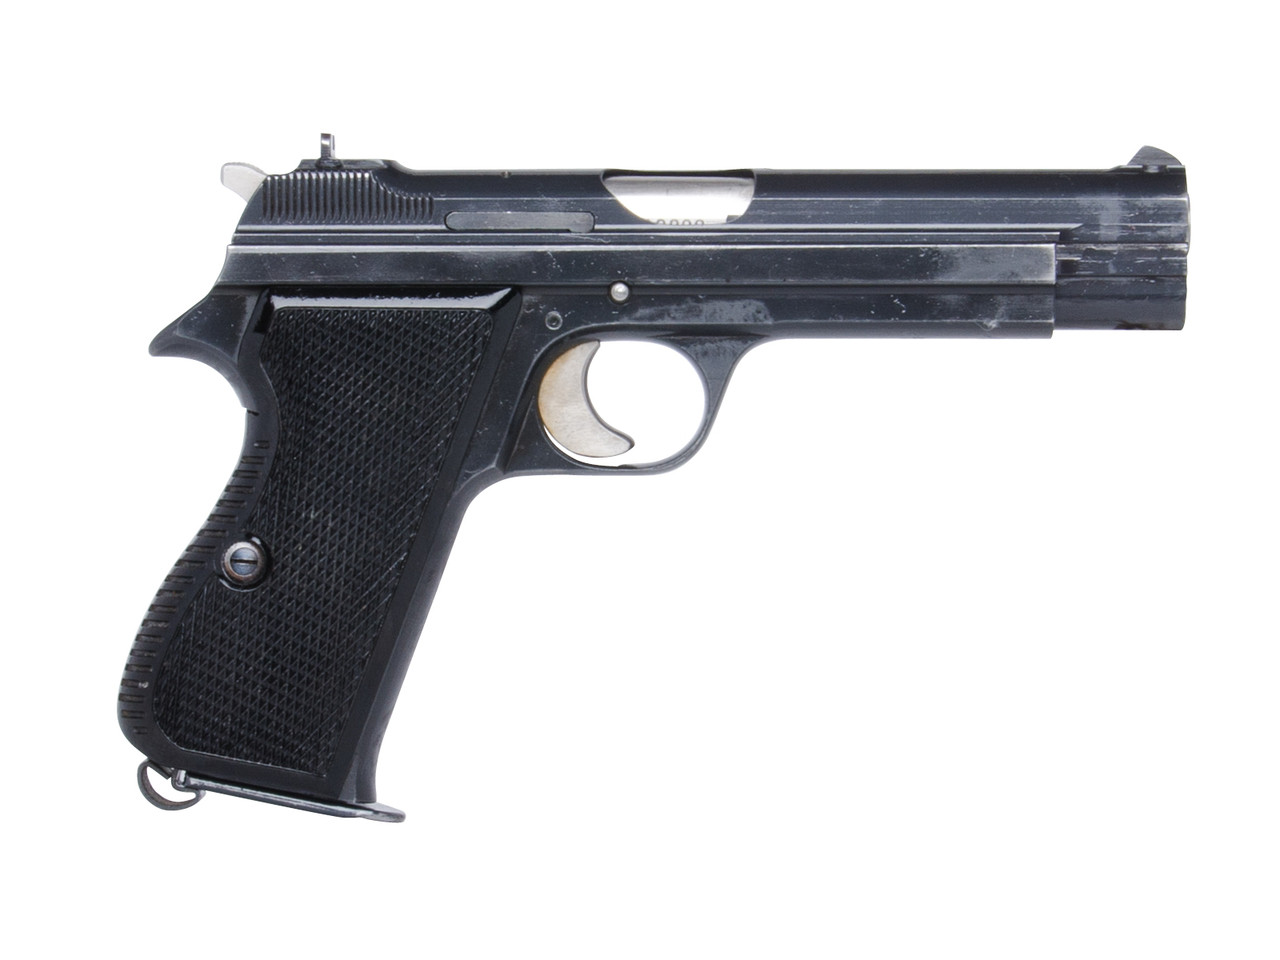 Buy Swiss Army P49 - $2495 (P49-A110292) - Edelweiss Arms